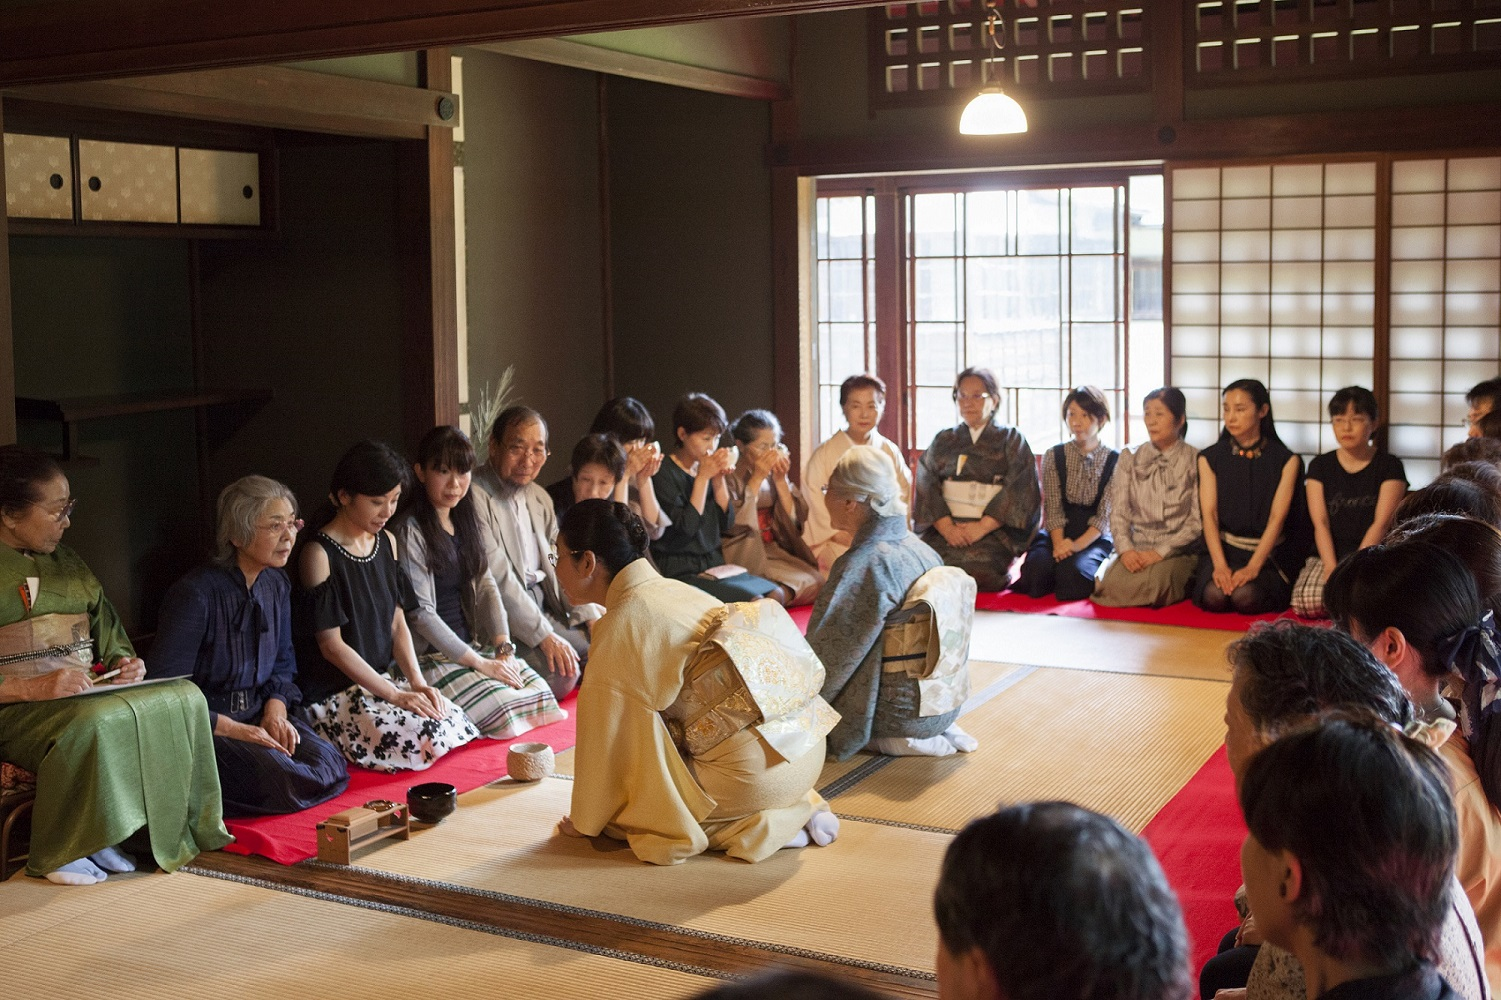 Tea ceremony at the museum